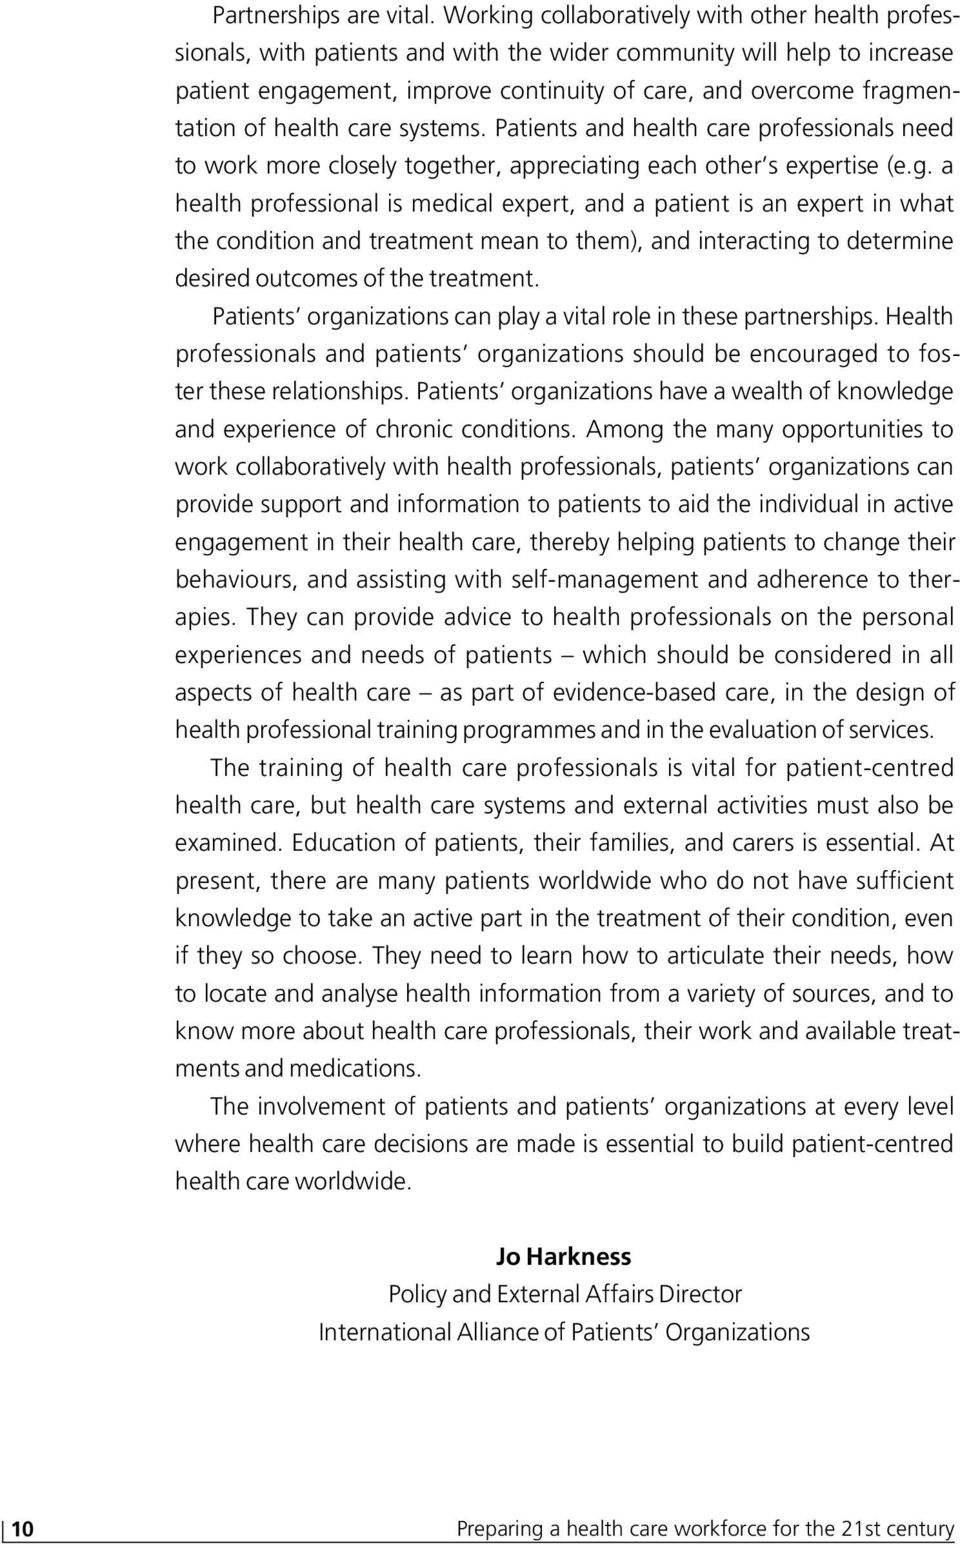 health care systems. Patients and health care professionals need to work more closely toge